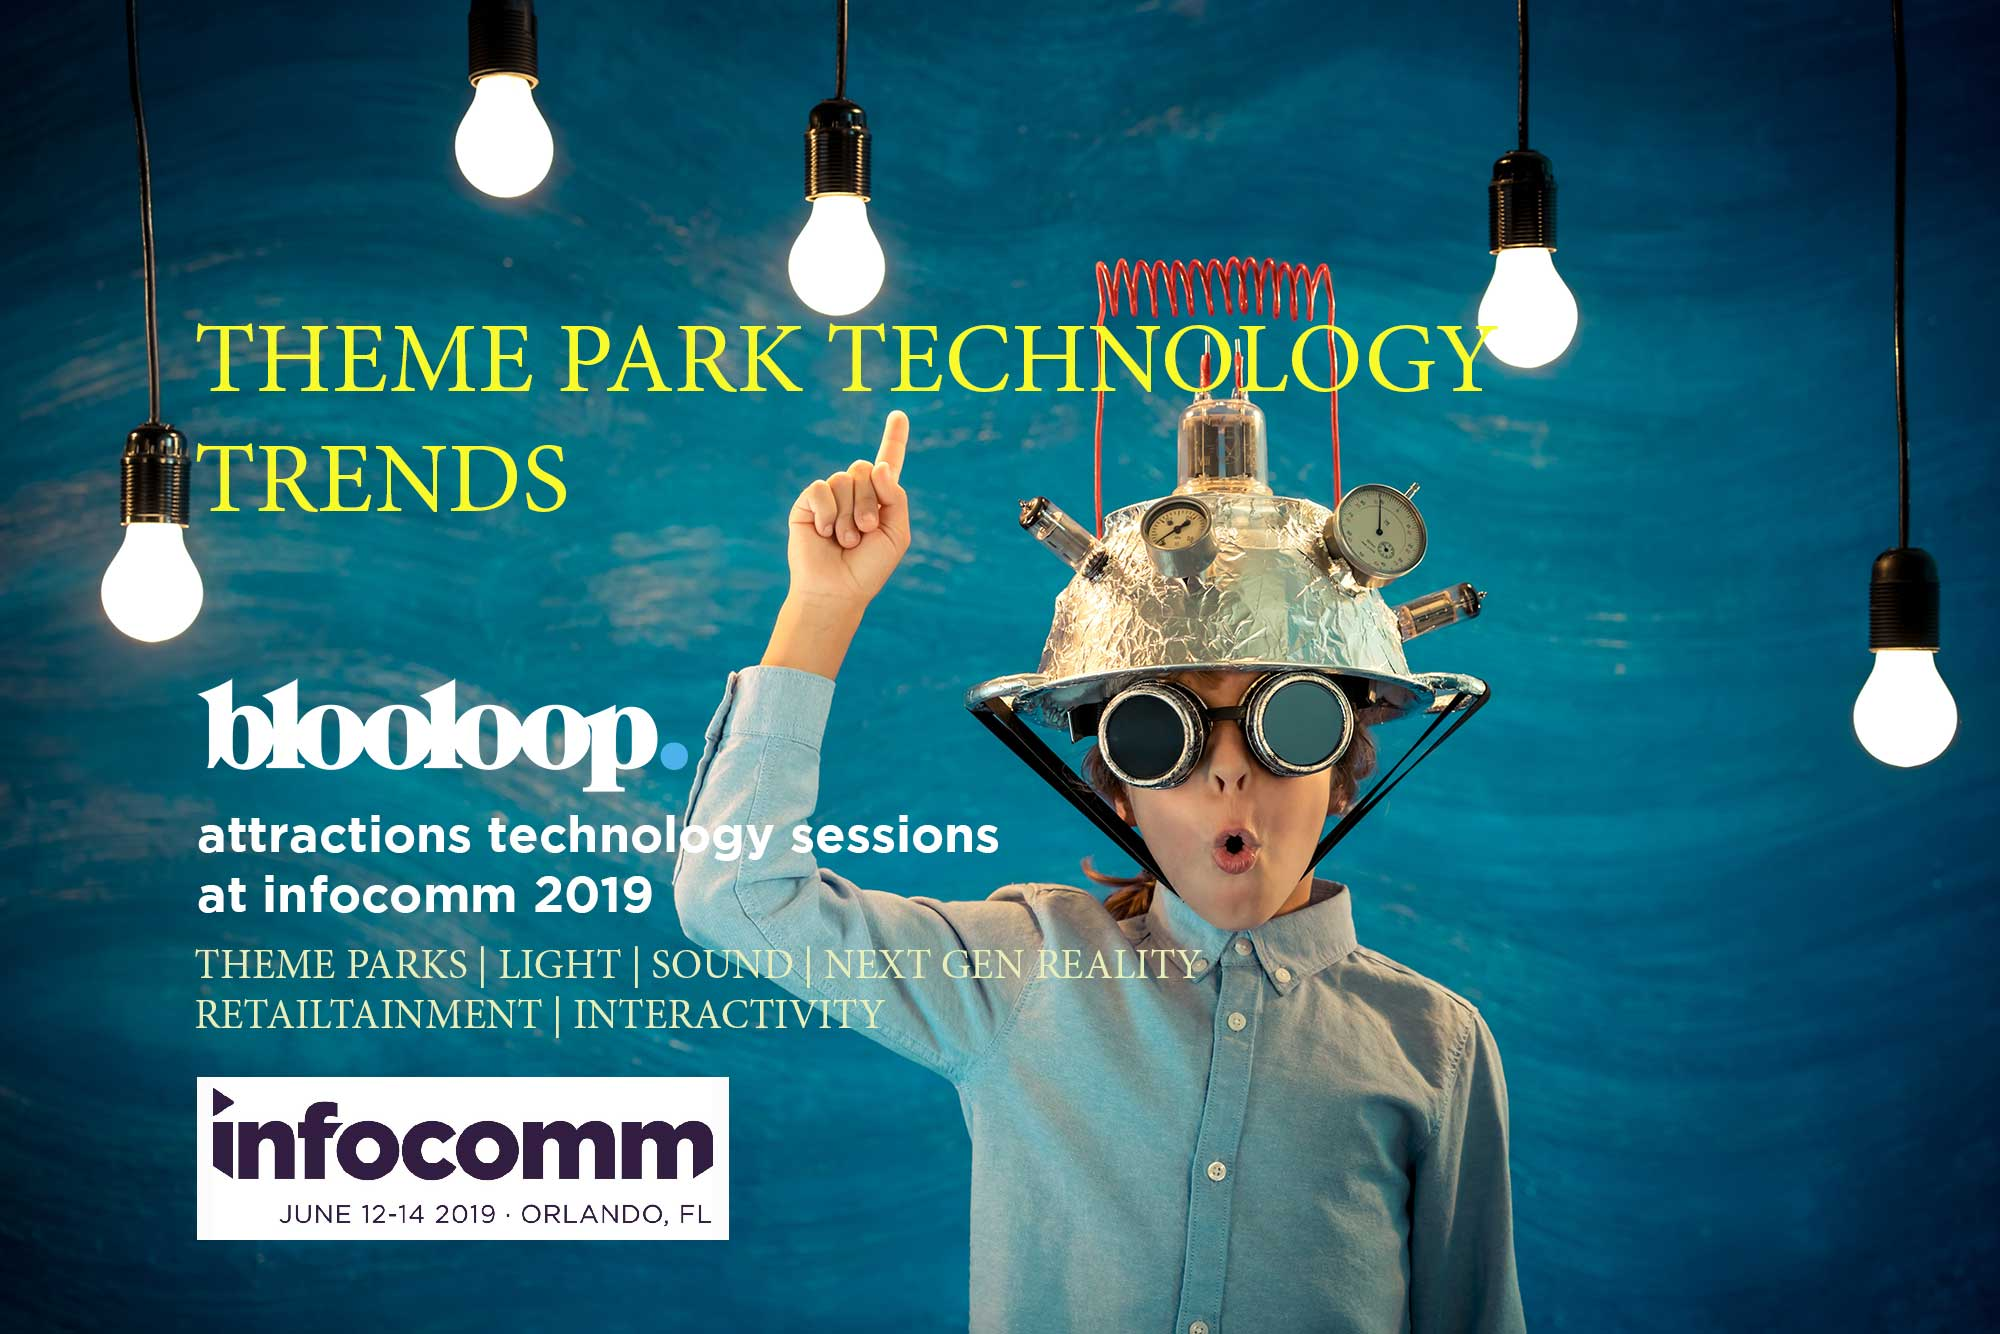 infocomm blooloop attractions technology sessions theme park trends